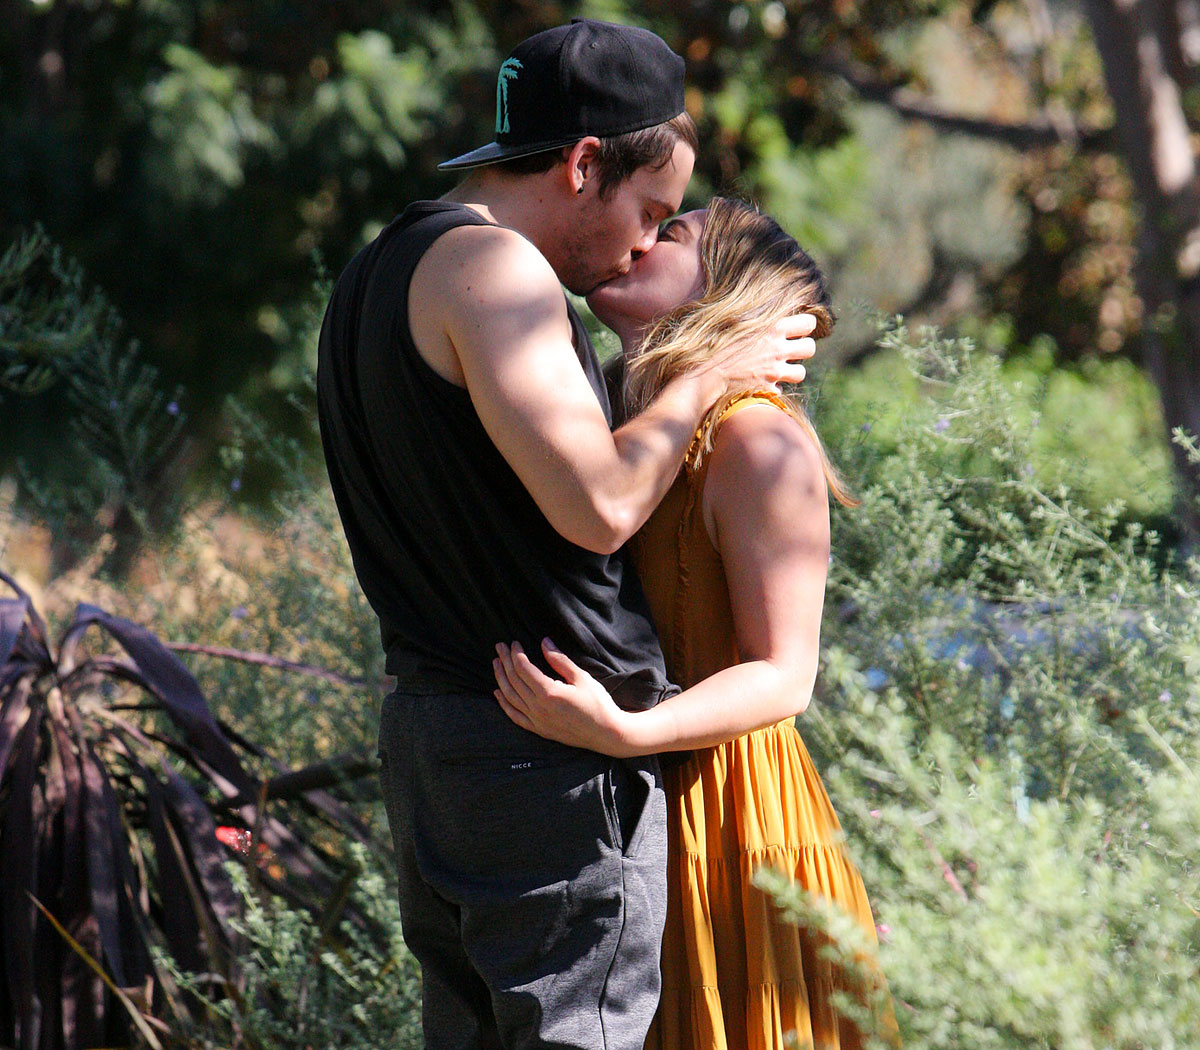 Hilary Duff and Matthew Koma: A Timeline of Their Relationship - EXCLUSIVE: Hilary Duff Kissing her boyfriend Matthew Koma while out in Los Angeles. 24 Nov 2017 Pictured: Hilary Duff and Matthew Koma.